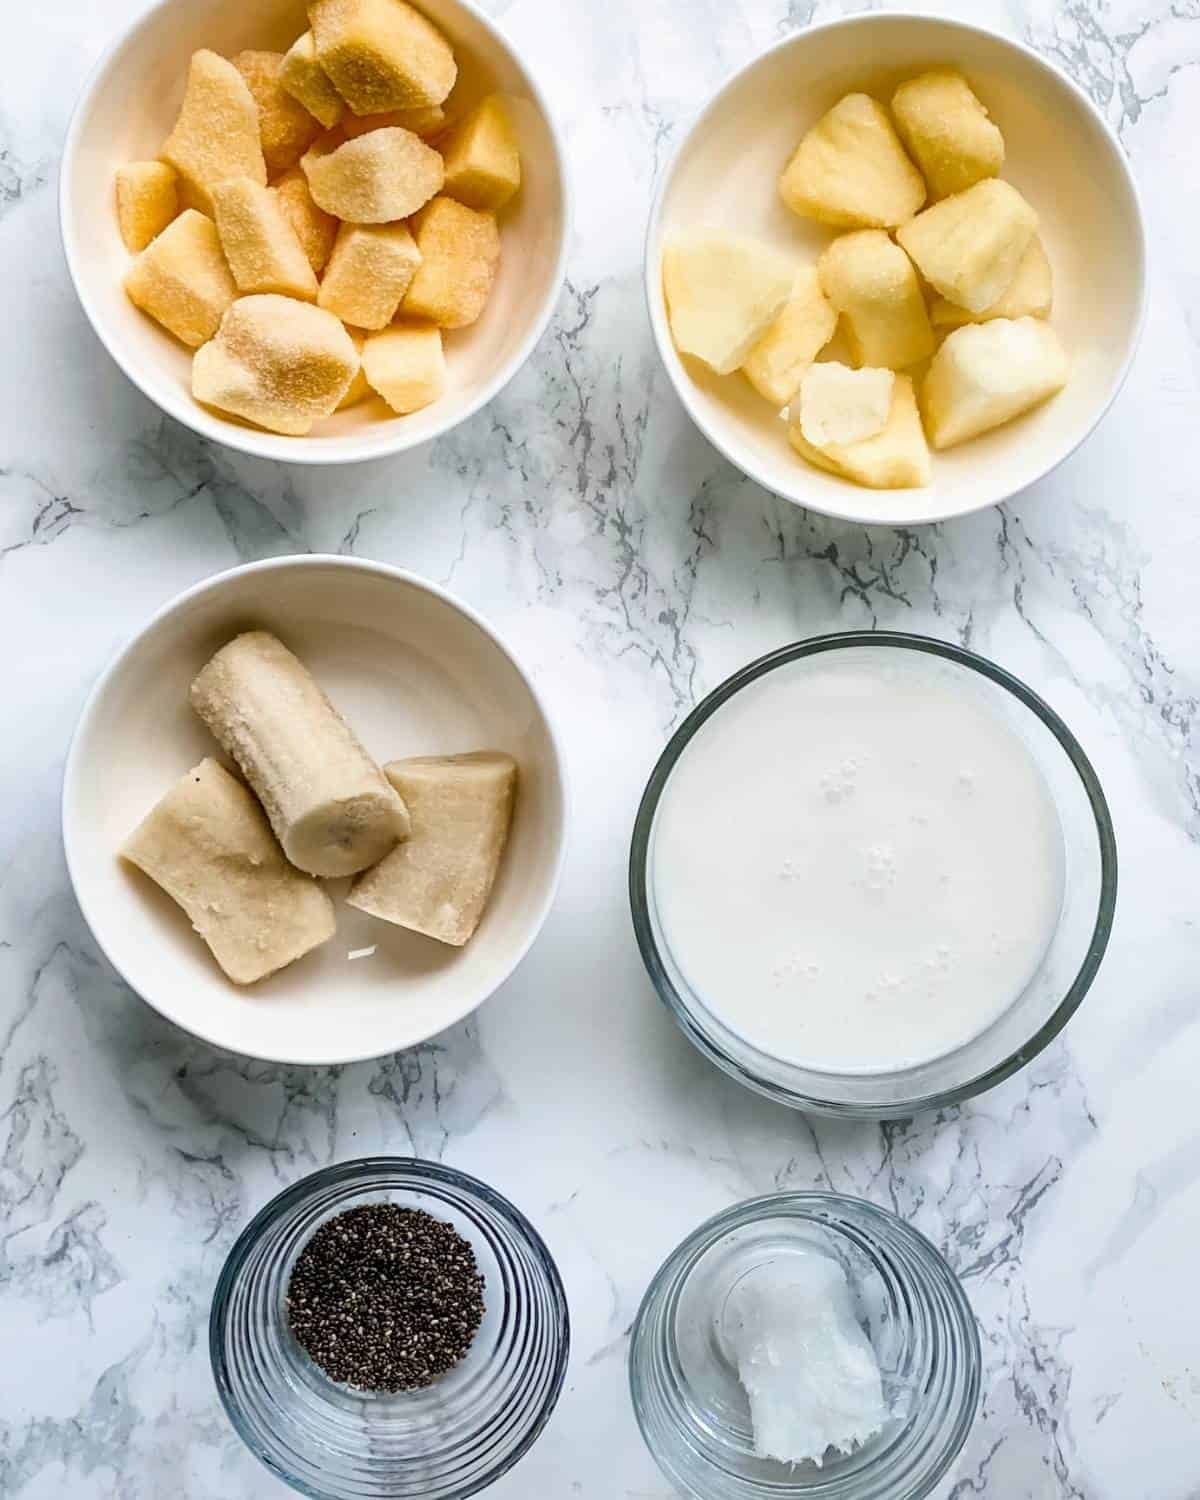 tropical smoothie ingredients. Pineapple, mango, banana, coconut milk, coconut oil, and chia seeds.